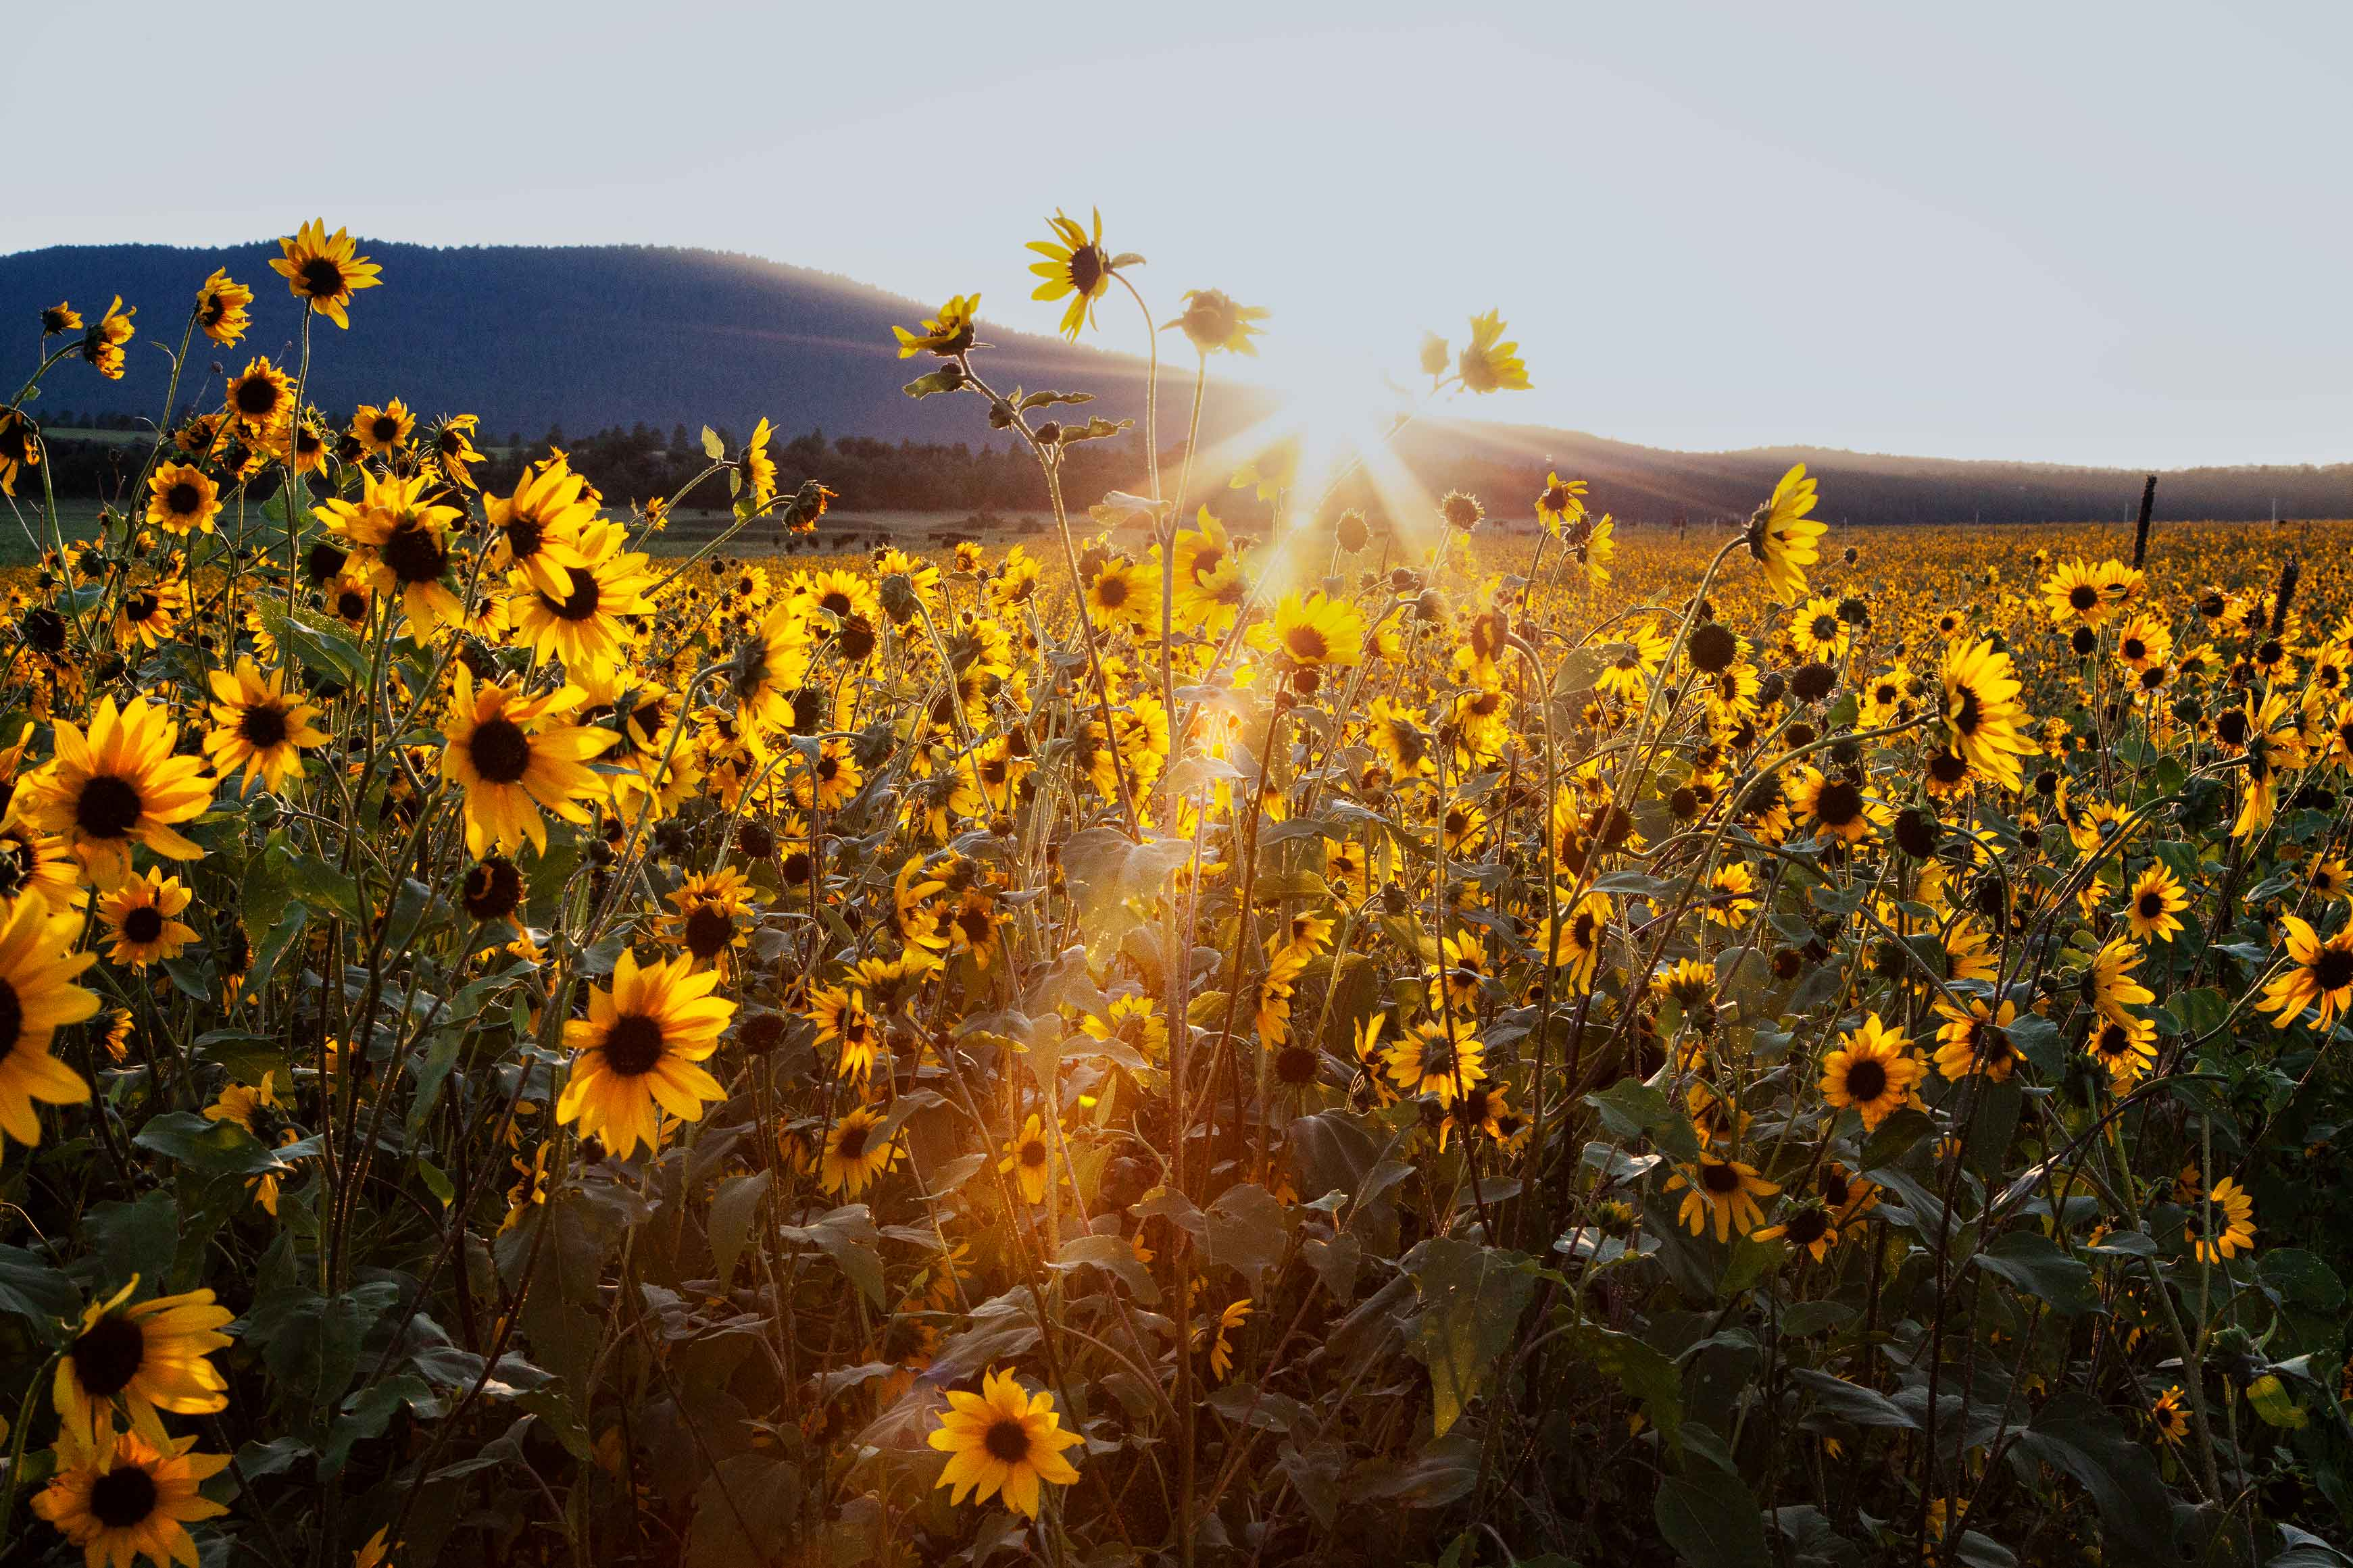 Wild Sunflowers in Arizona